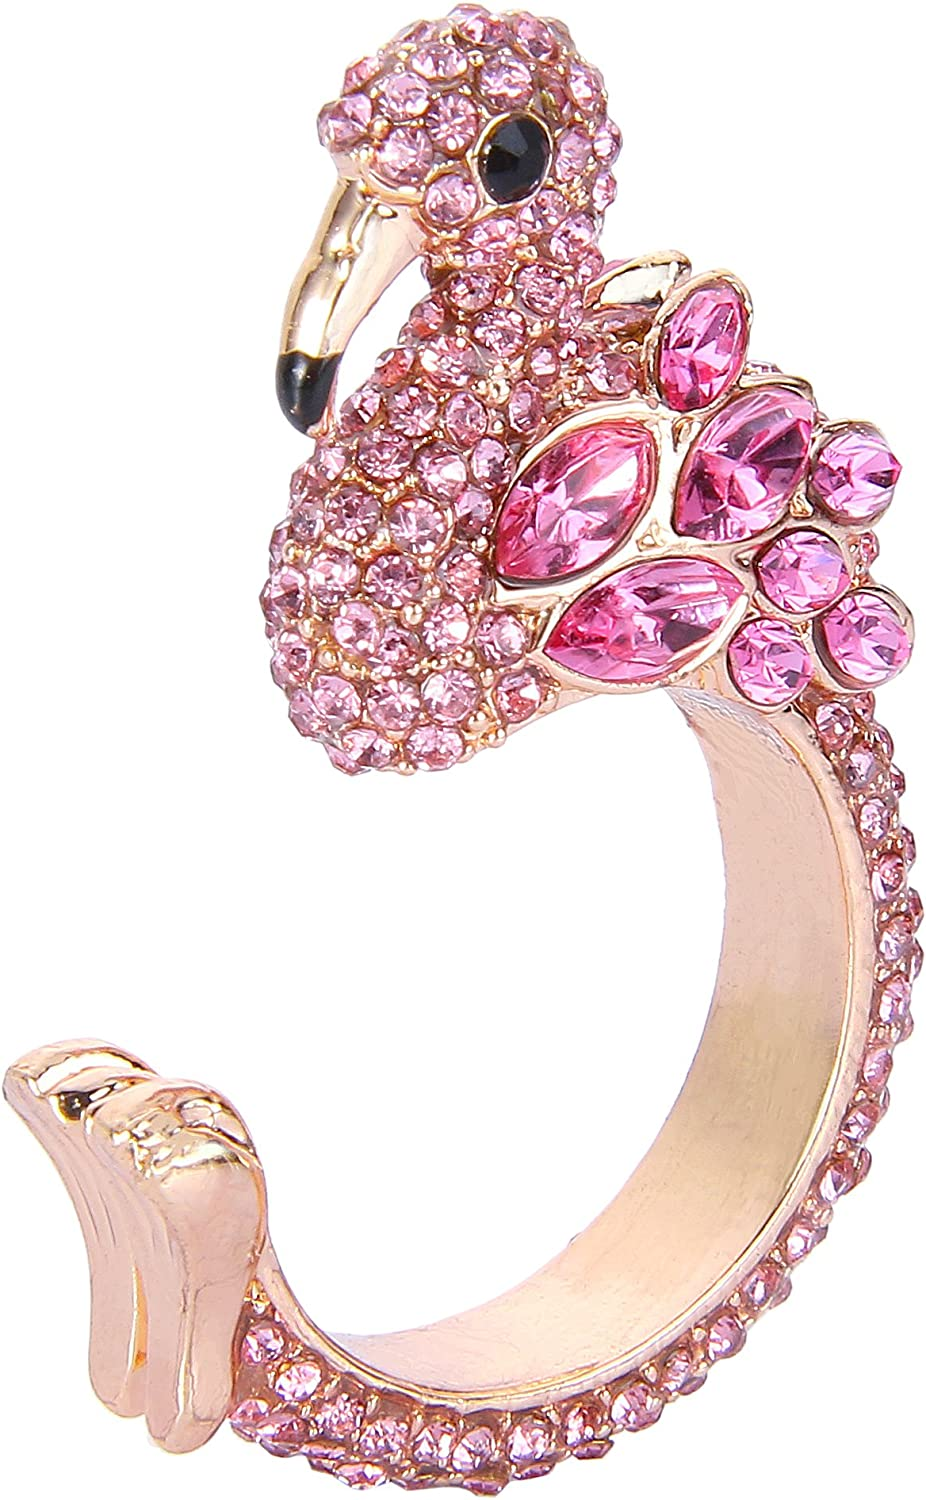 EVER FAITH Gold-Tone Austrian Crystal Lovely Little Flamingo Statement Cuff Ring Pink